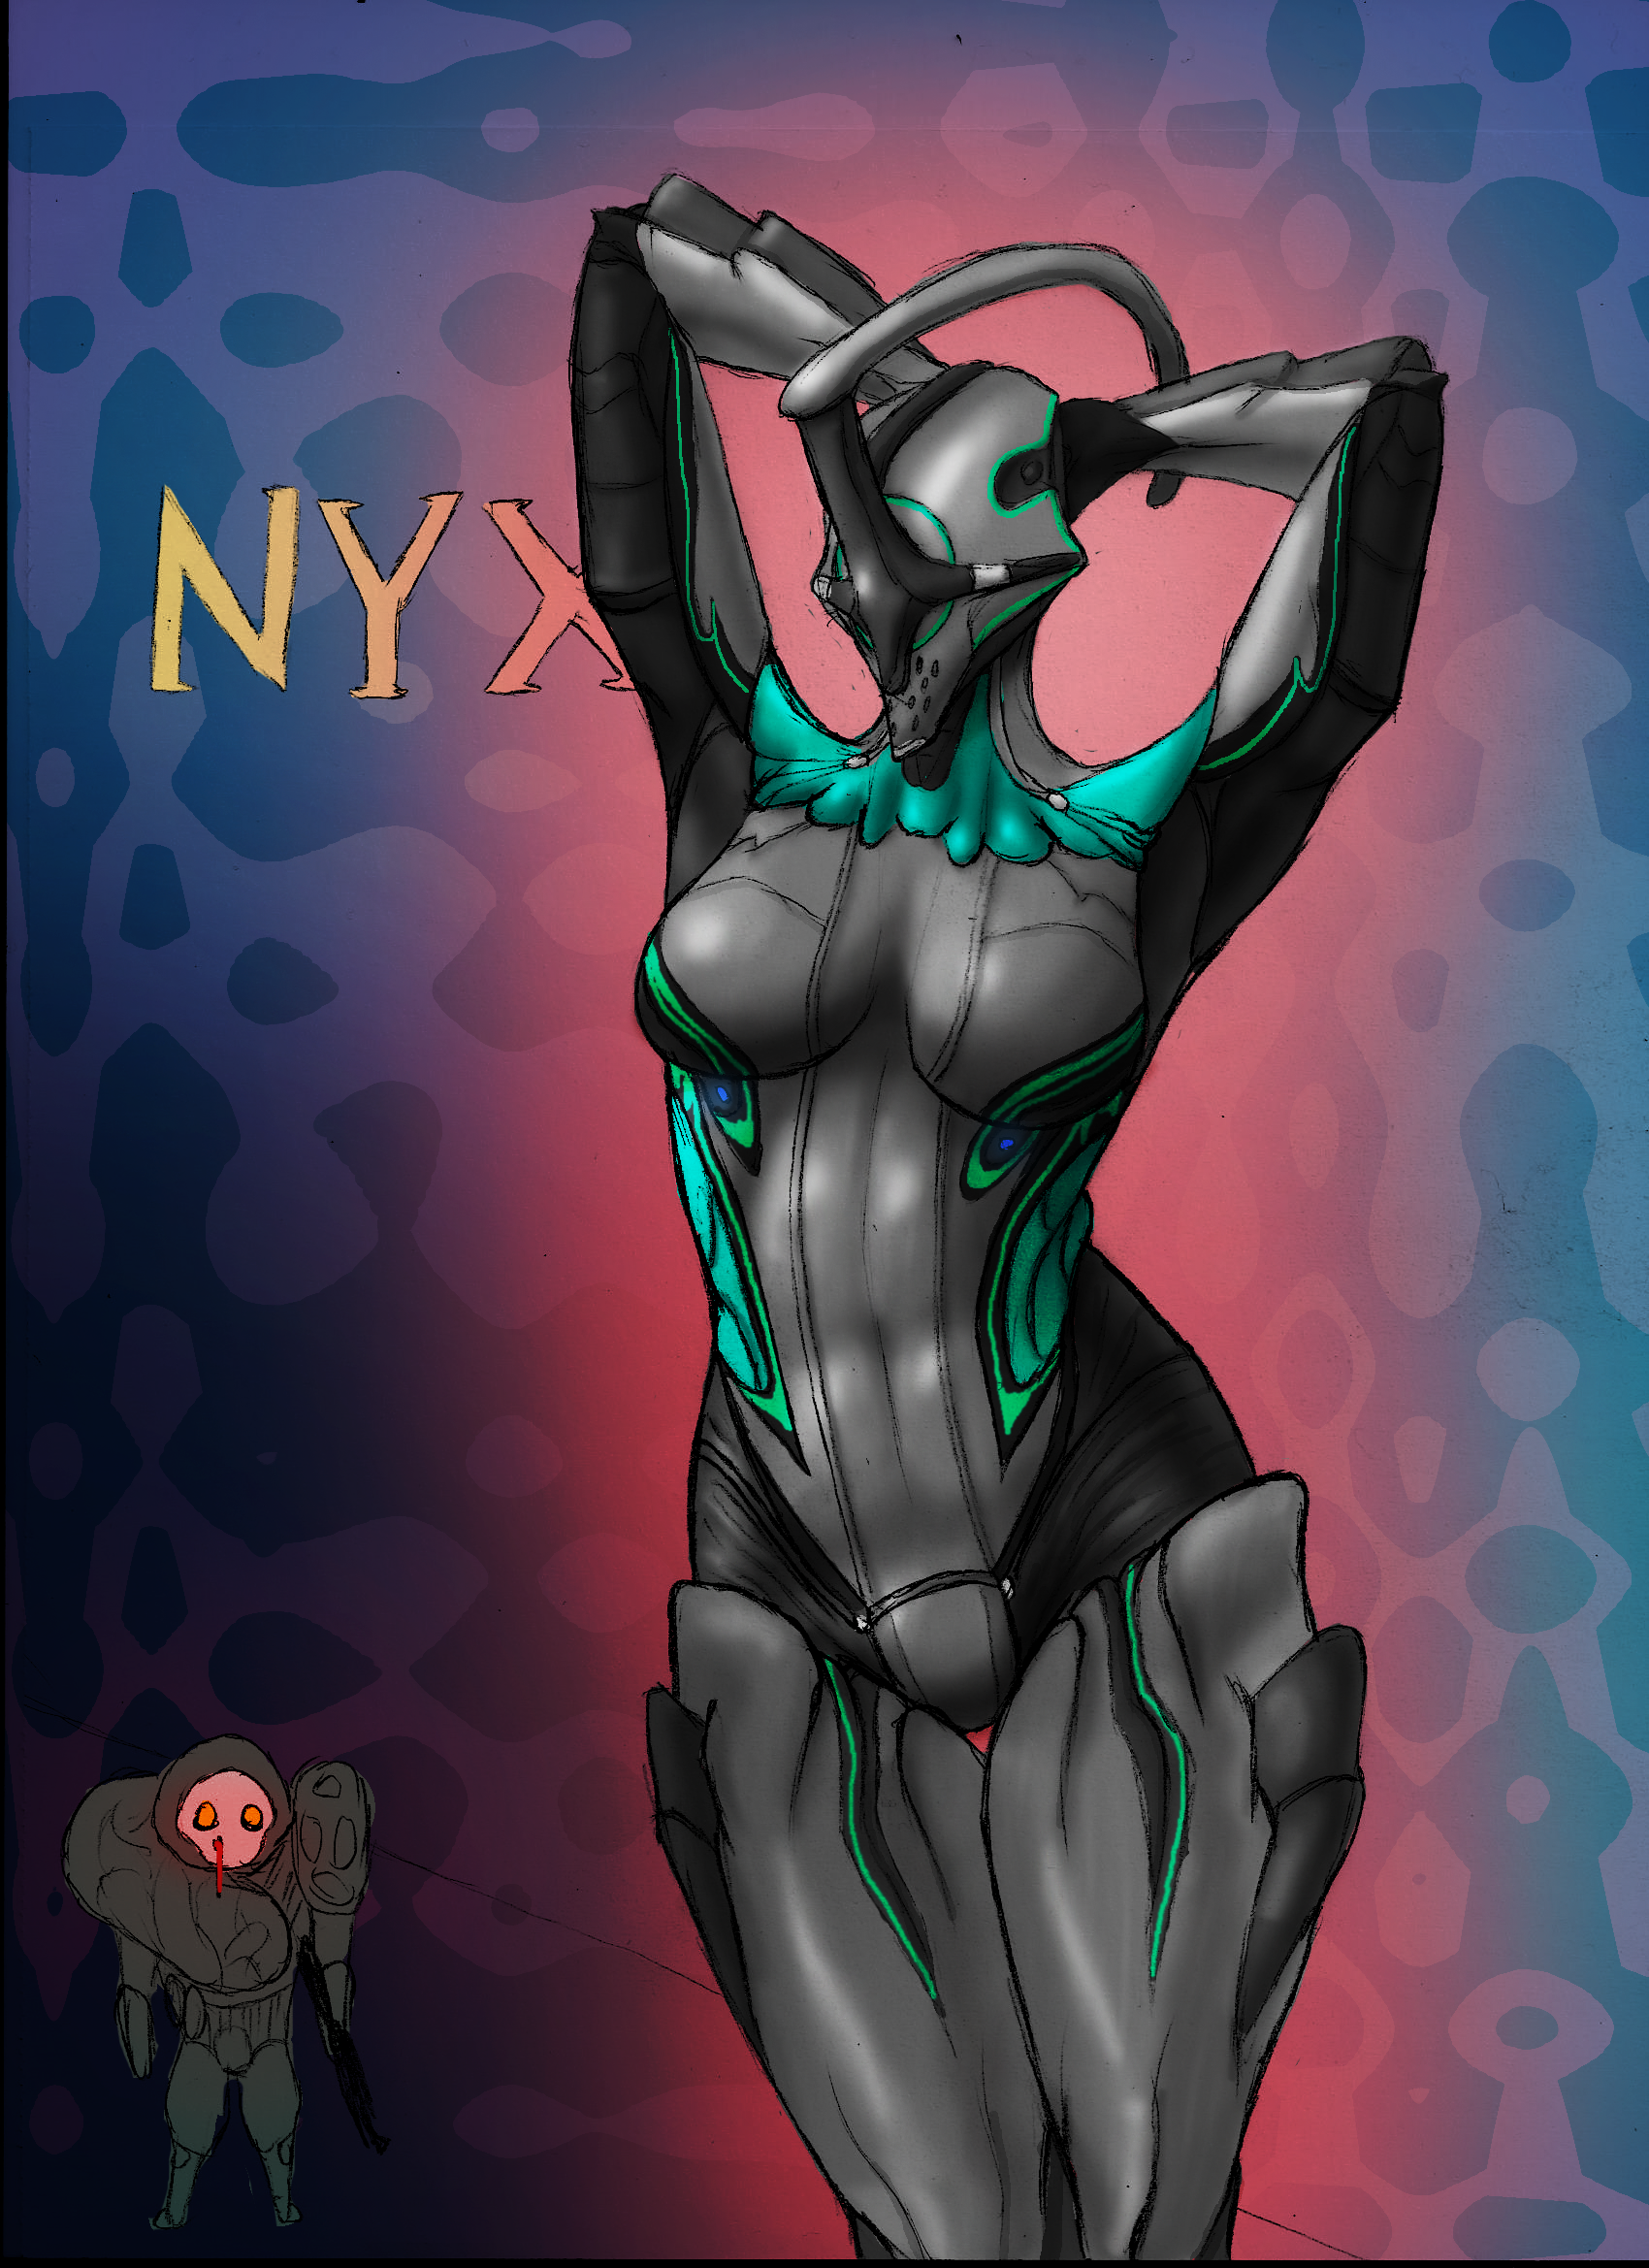 Nyx is cool